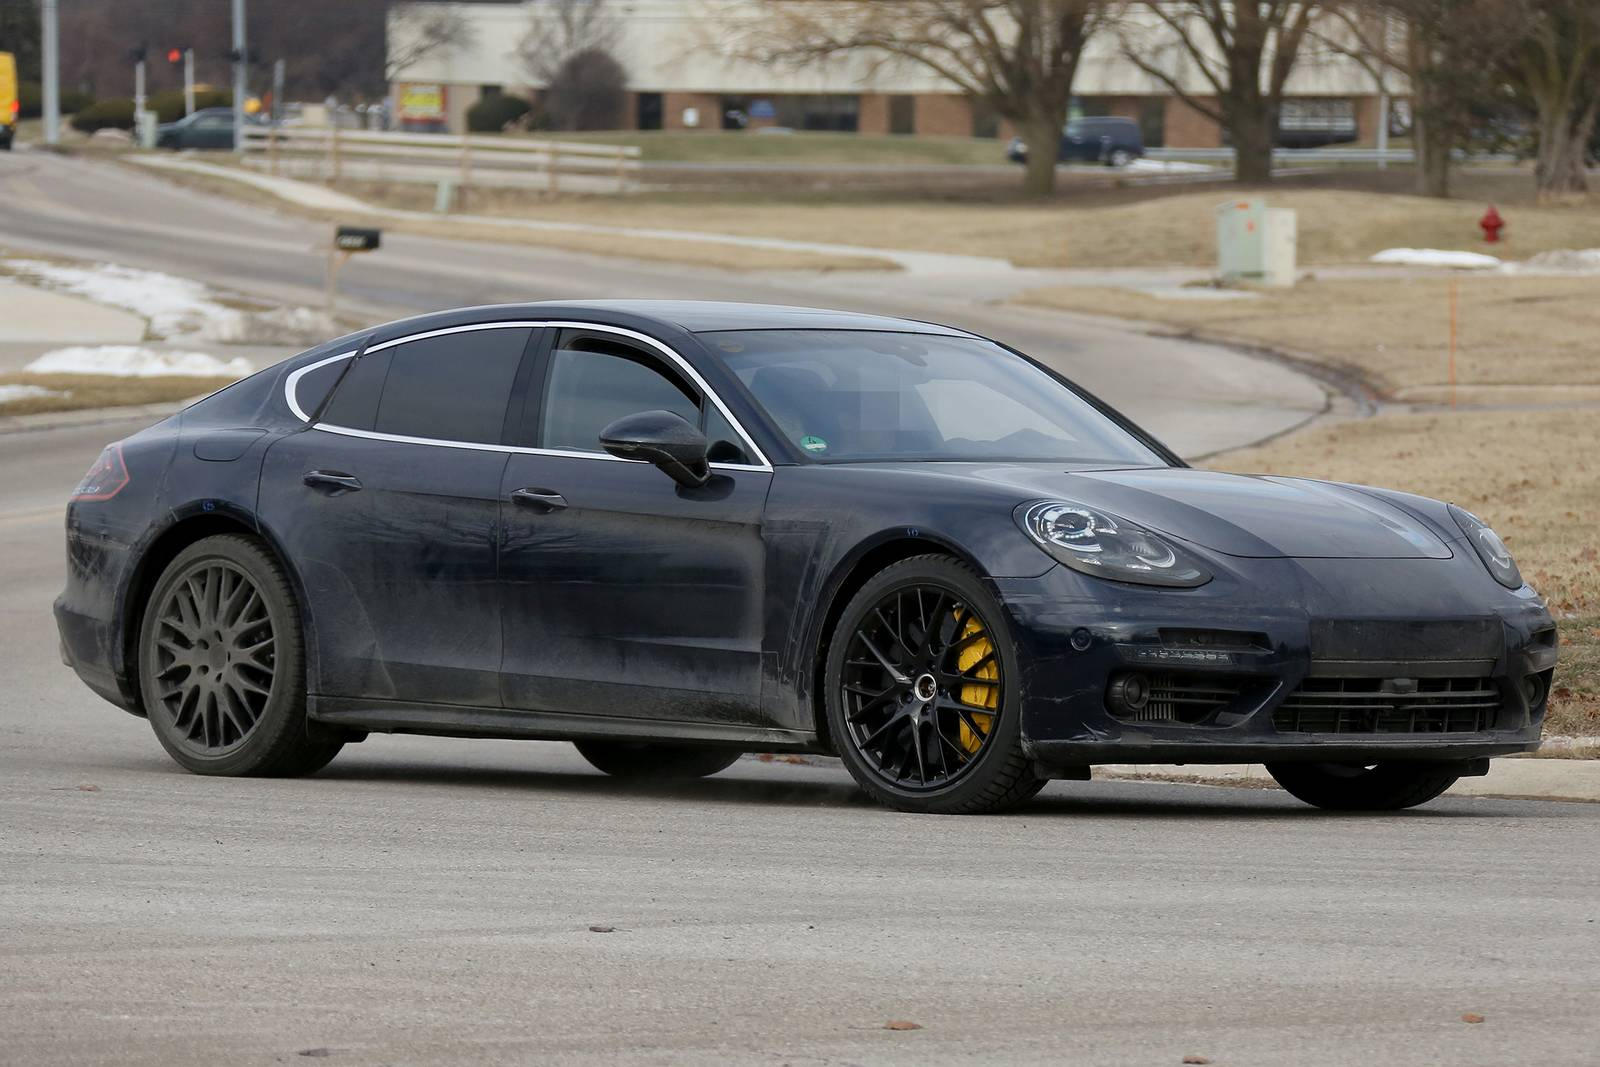 Porsche Reveals New 600hp V8 Engine for Panamera and Cayenne